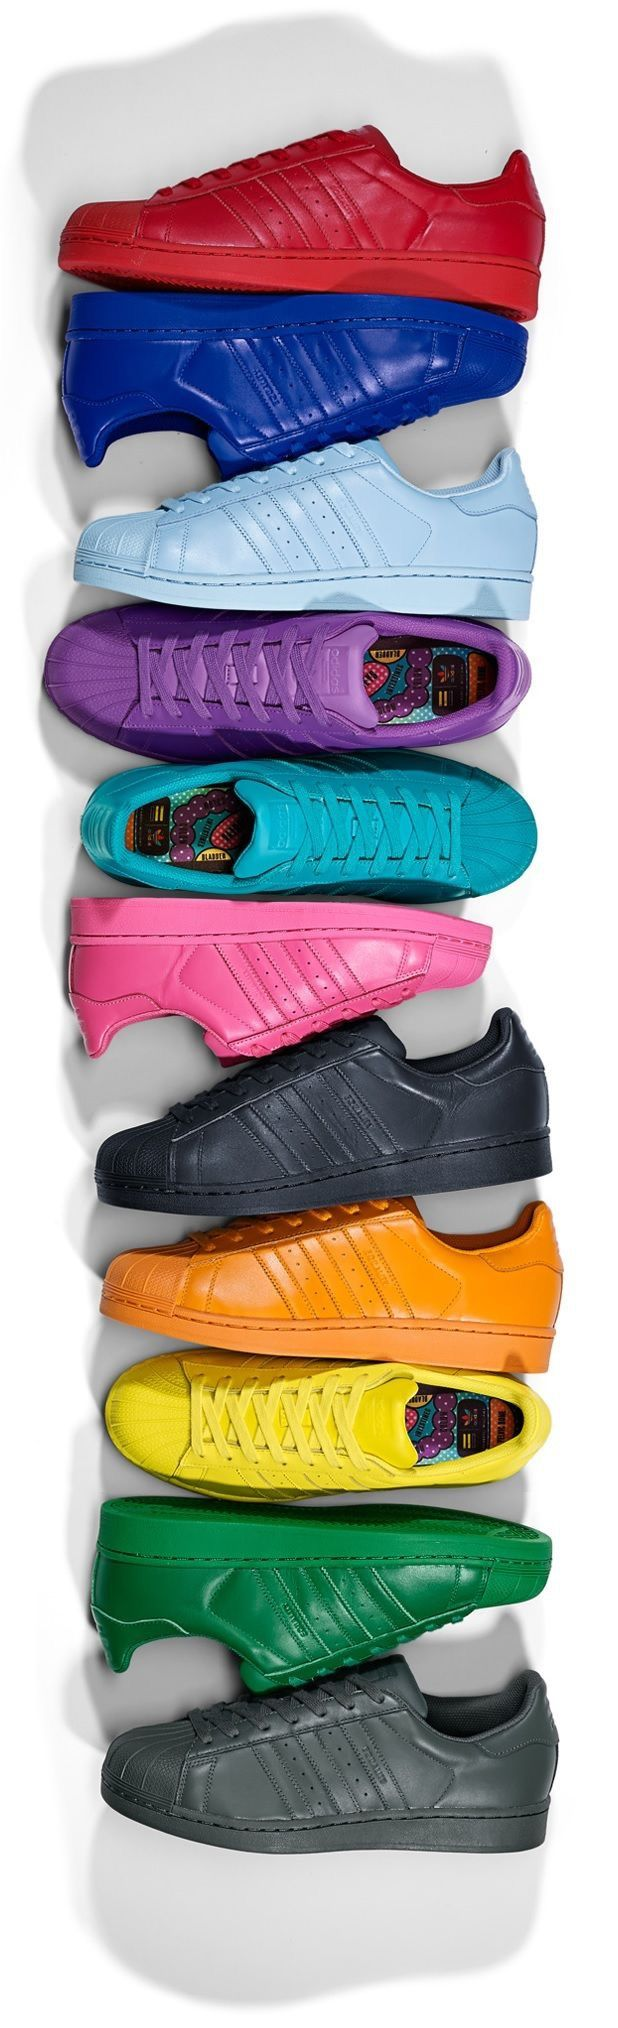 Adidas Superstar Super colors ❤️